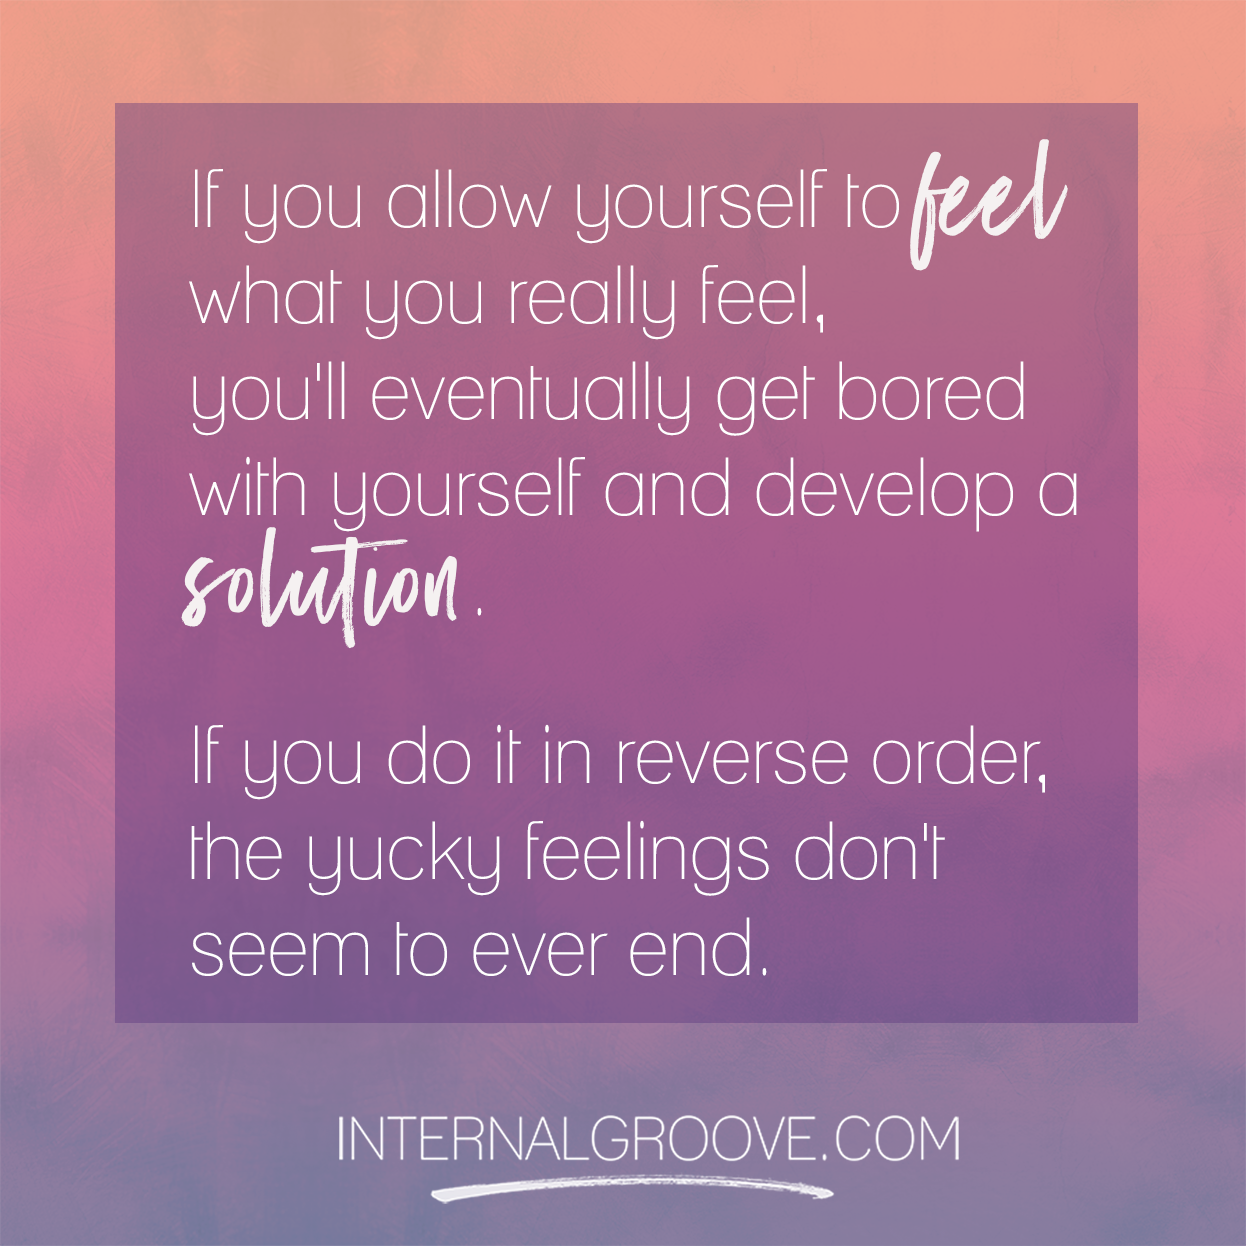 If you allow yourself to feel what you really feel, you will eventually get bored with yourself and develop a solution.